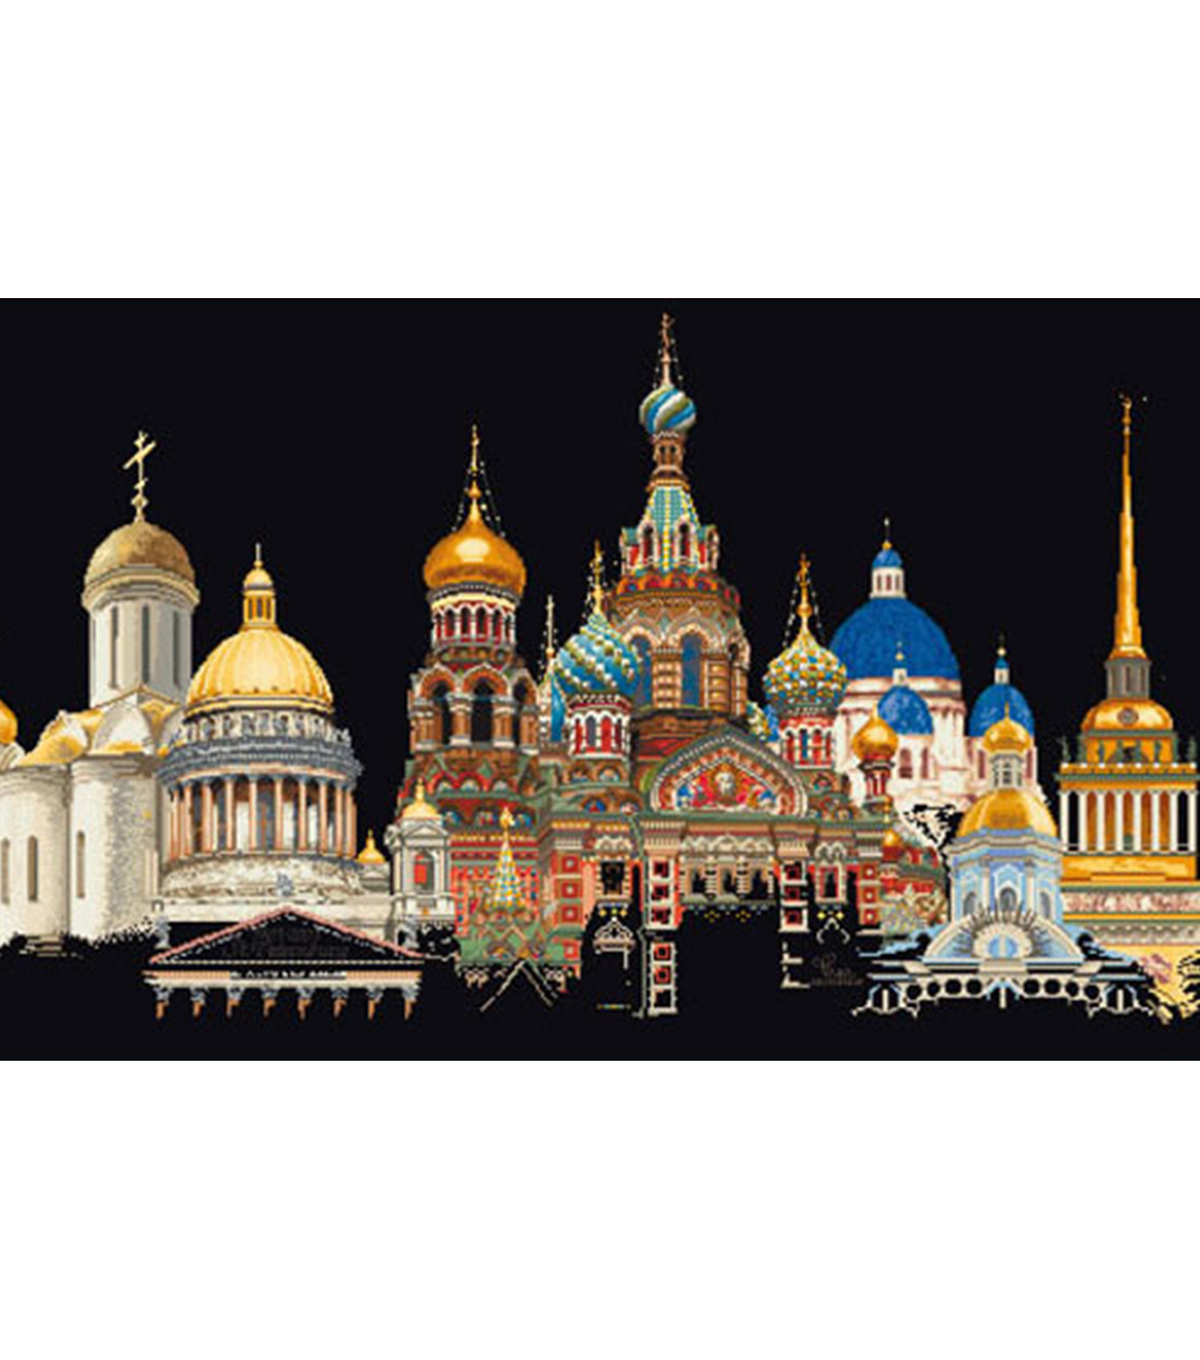 St. Petersburg On Aida Counted Cross Stitch Kit 18 Count